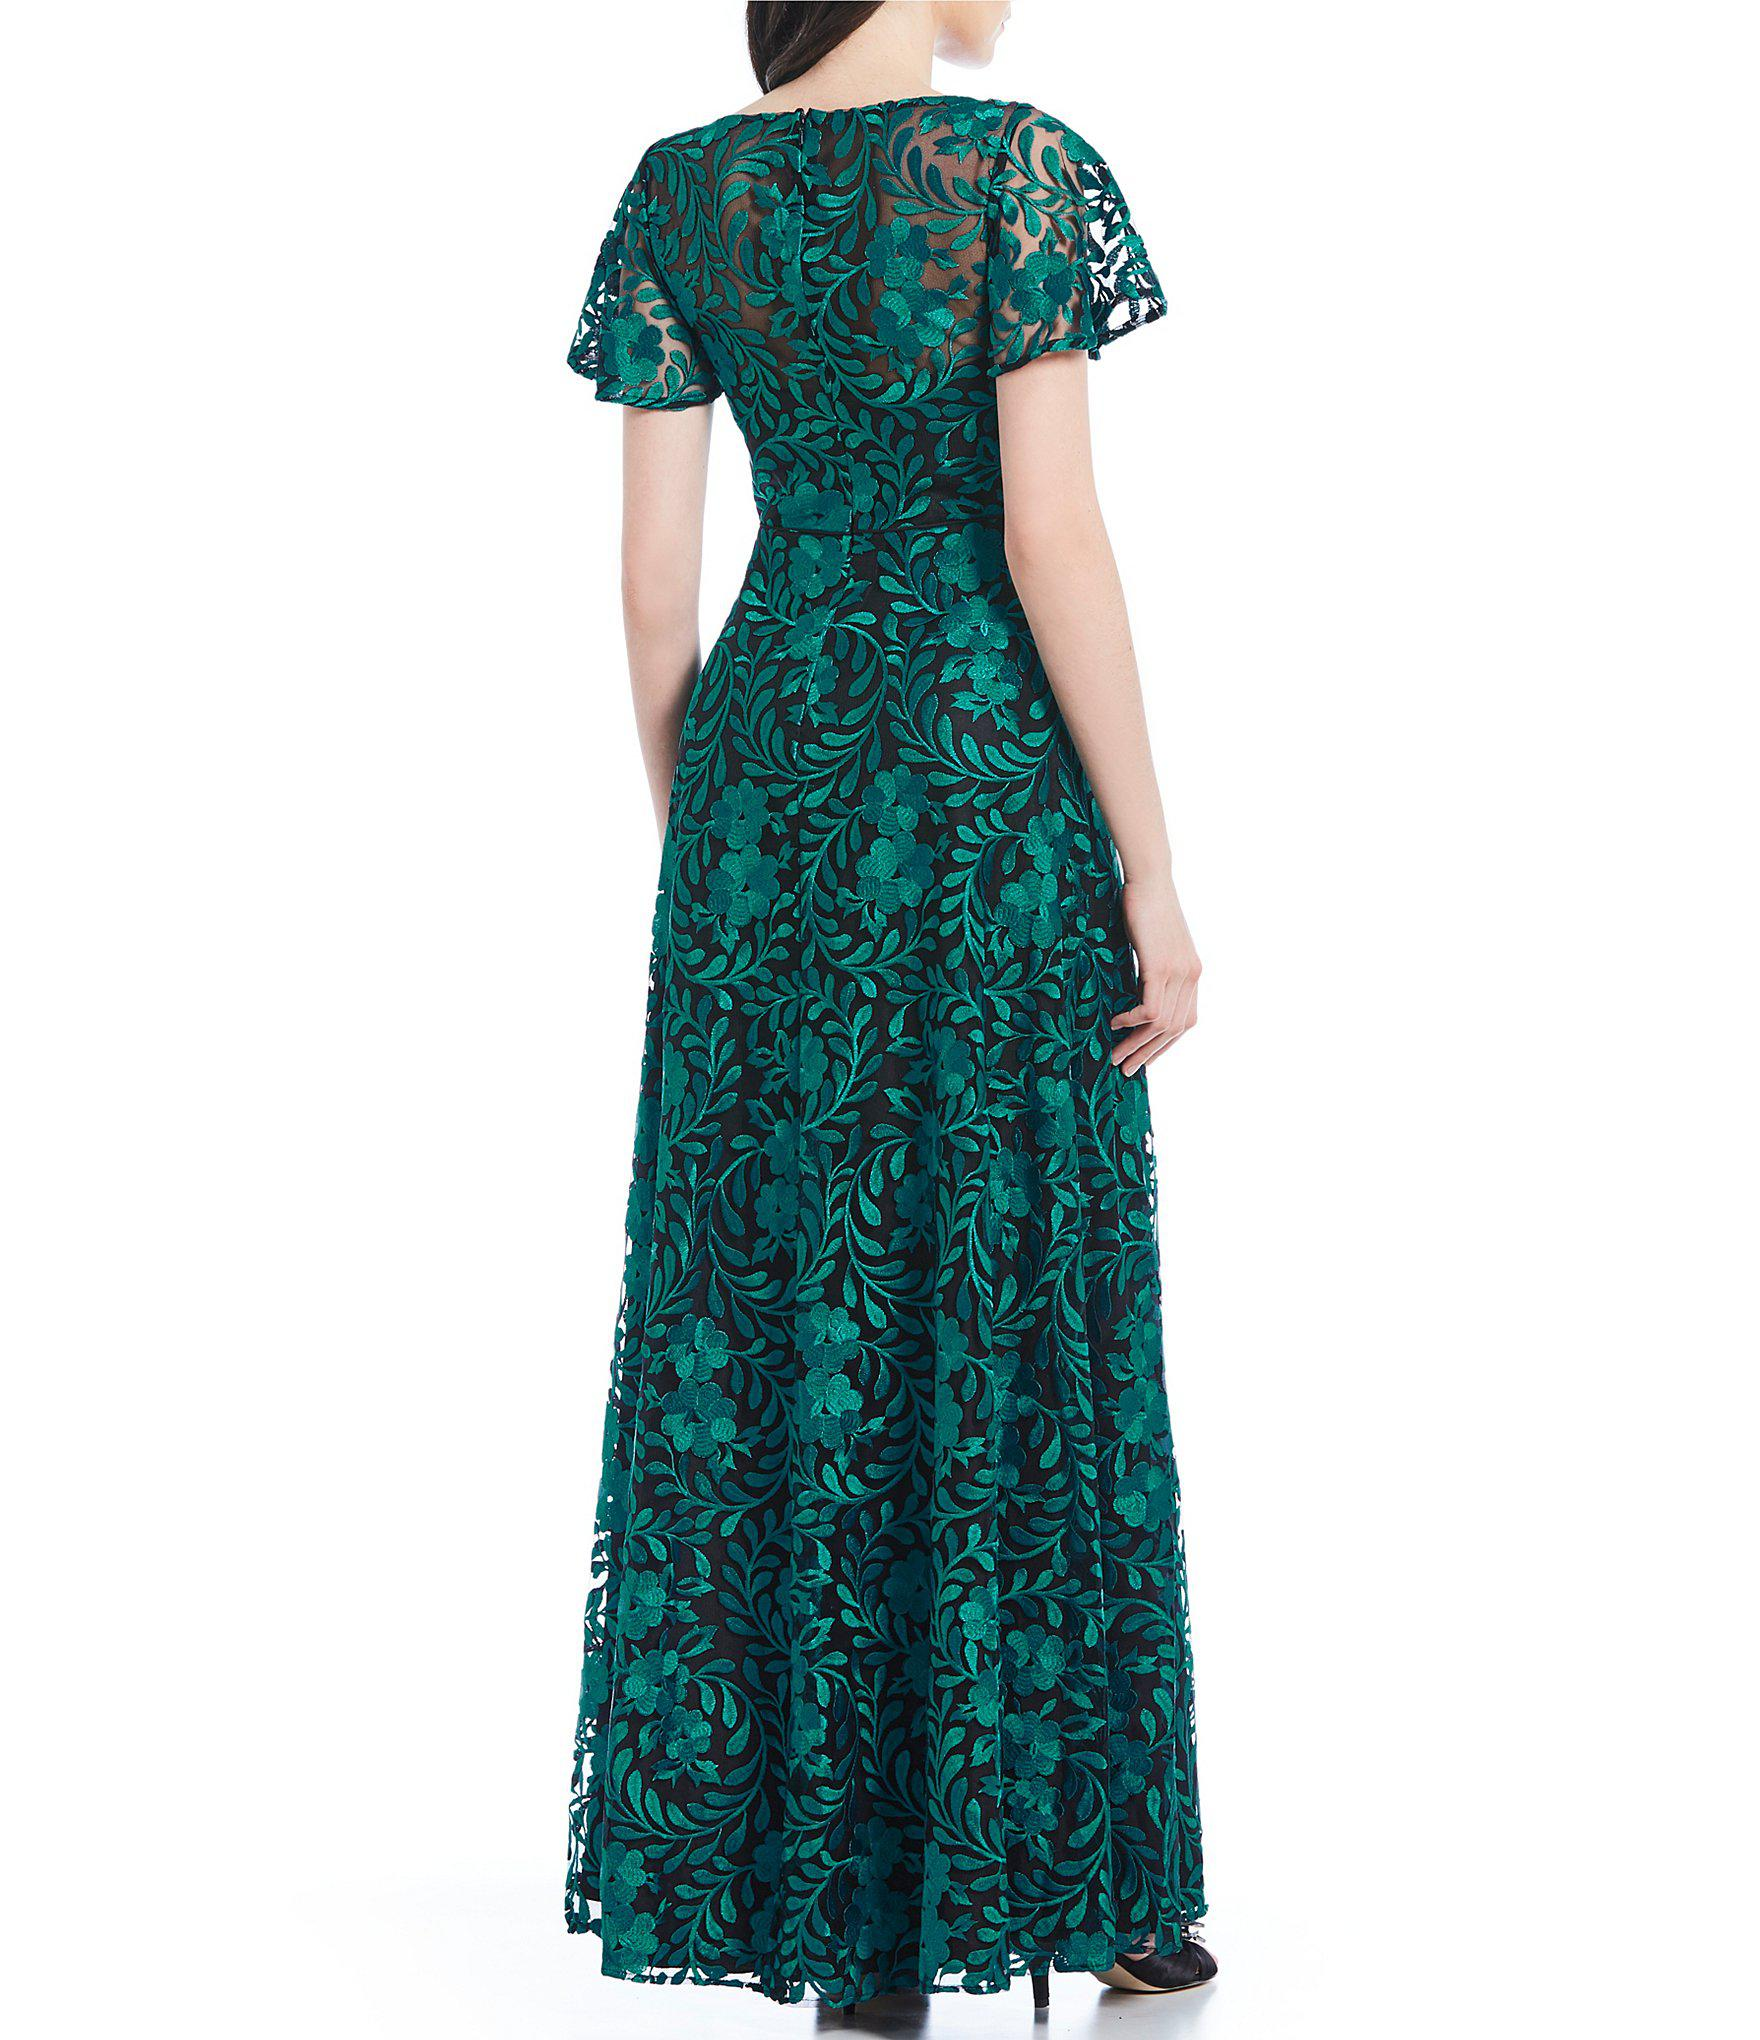 b0b42e3831d Carmen Marc Valvo - Green V-neck Embroidered A-line Gown - Lyst. View  fullscreen